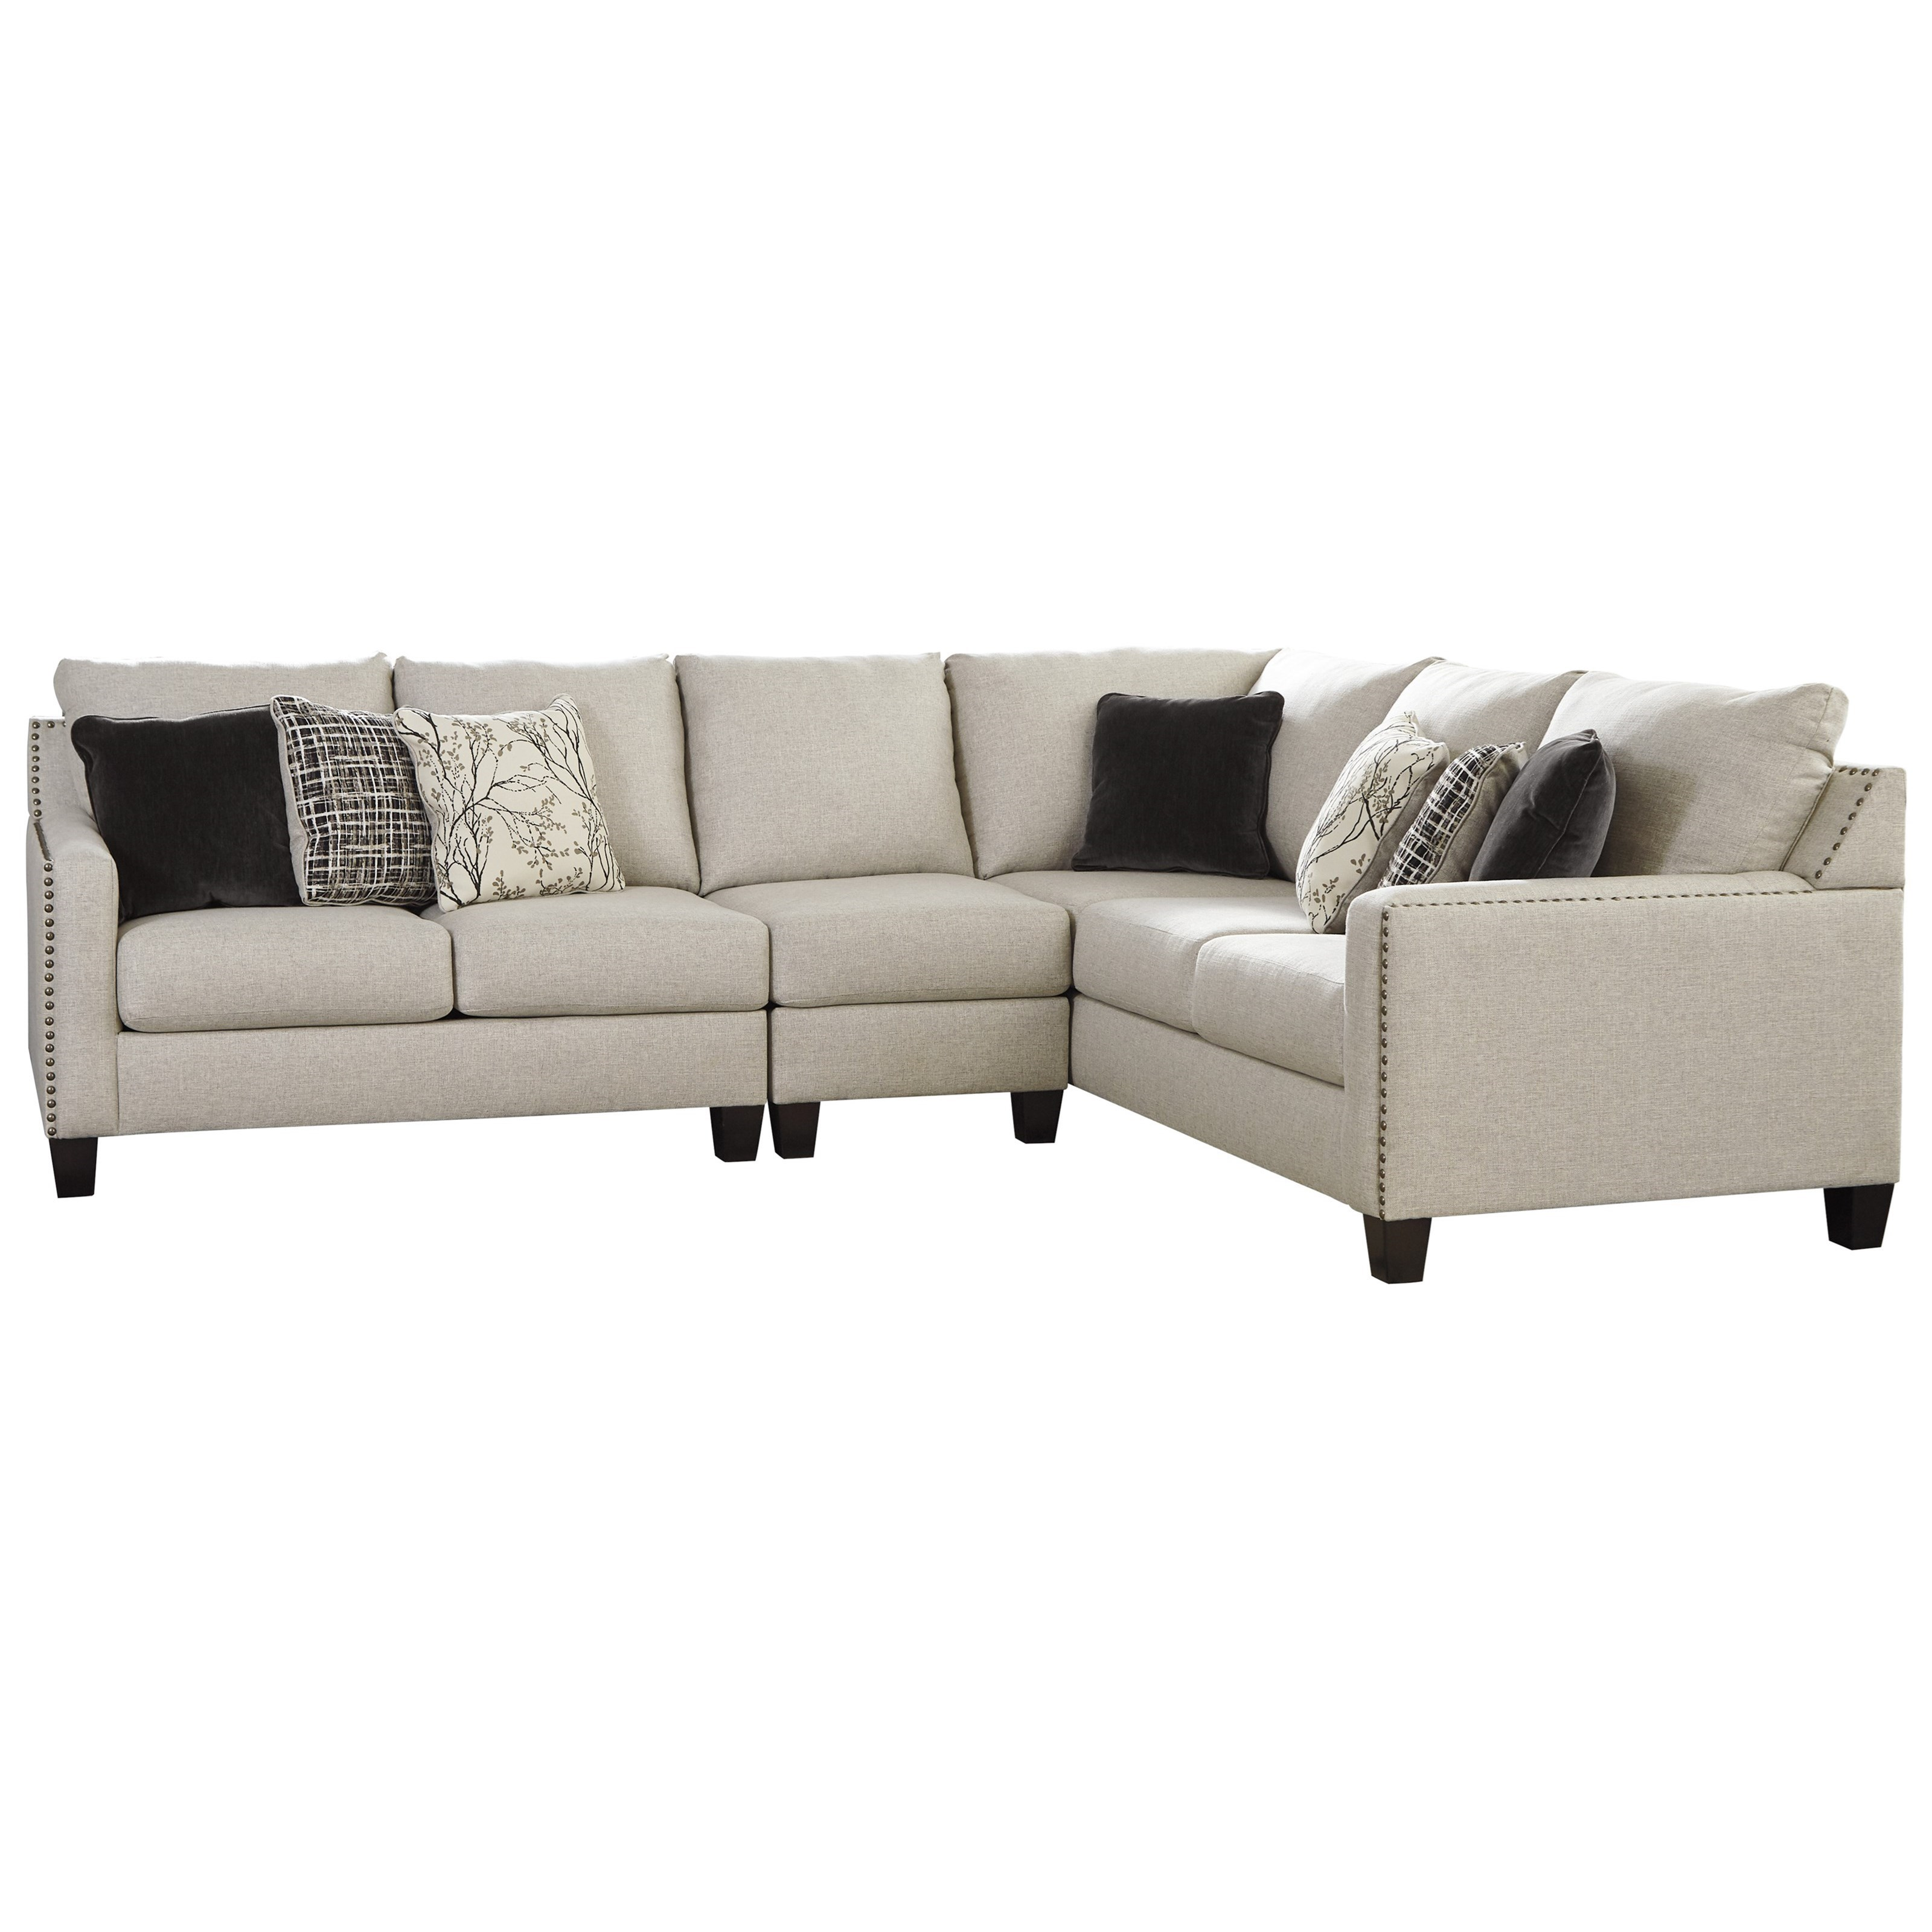 Hallenberg 3-Piece Sectional by Signature Design by Ashley at Northeast Factory Direct